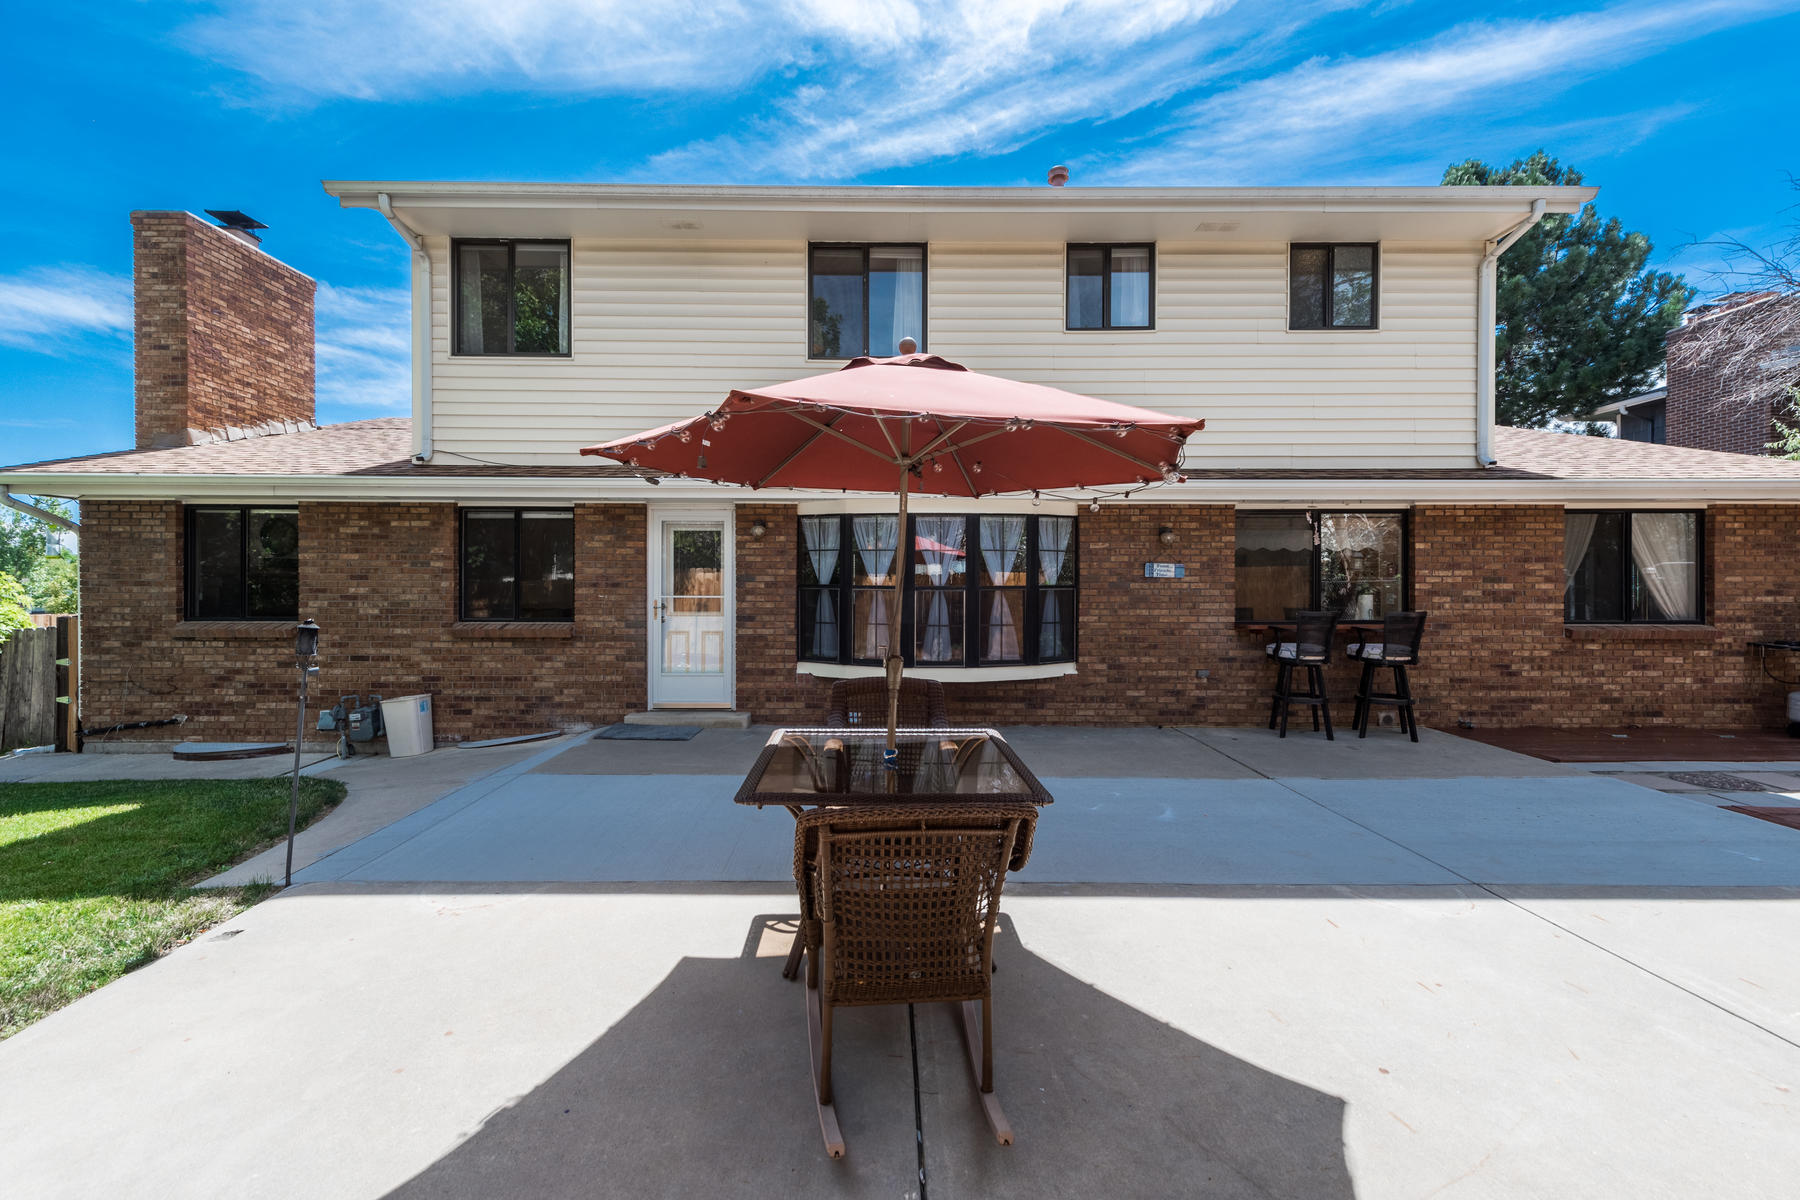 Property for Active at Charming spacious two-story family home with amazing curb appeal. 9155 W 81st Pl Arvada, Colorado 80005 United States